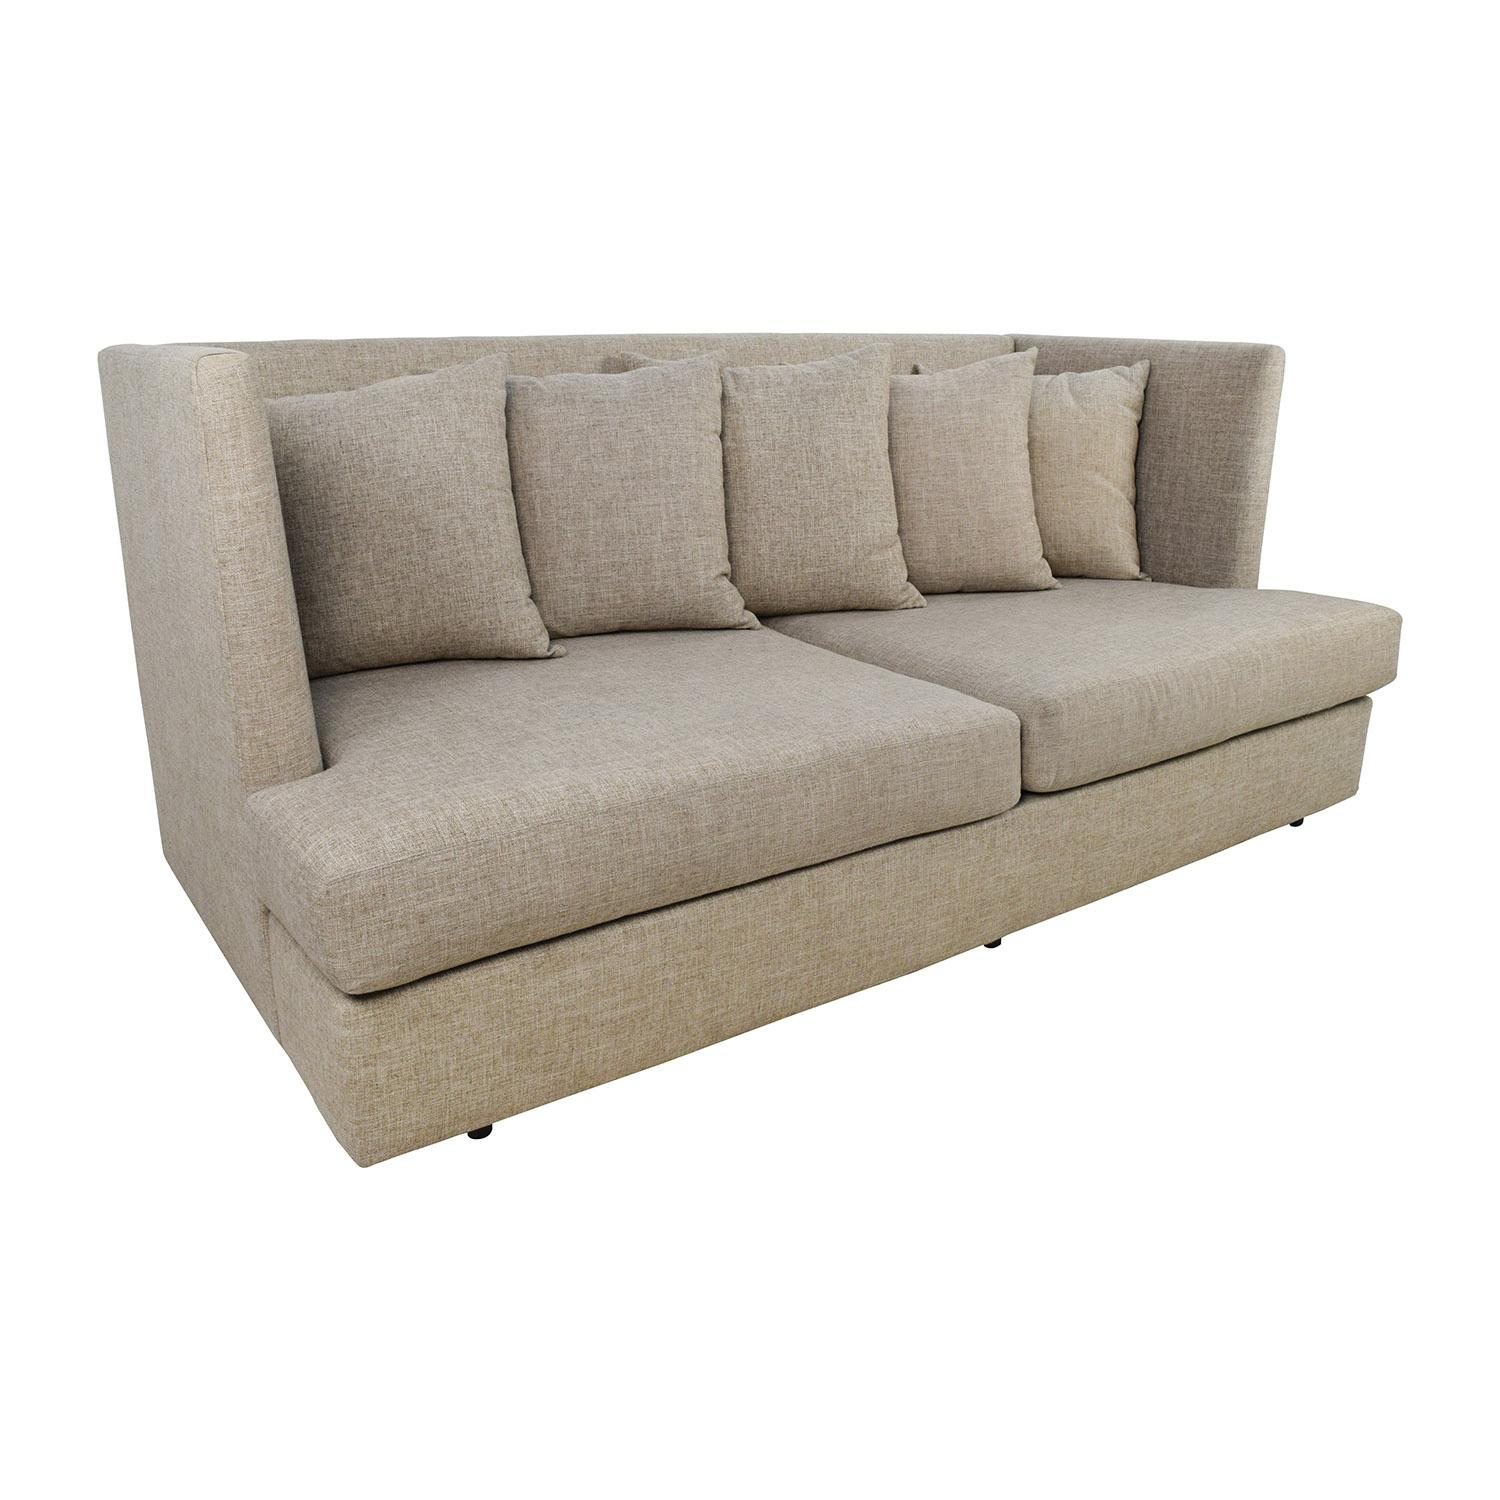 34% Off - Crate And Barrel Crate & Barrel Shelter Beige Couch / Sofas intended for Crate And Barrel Futon Sofas